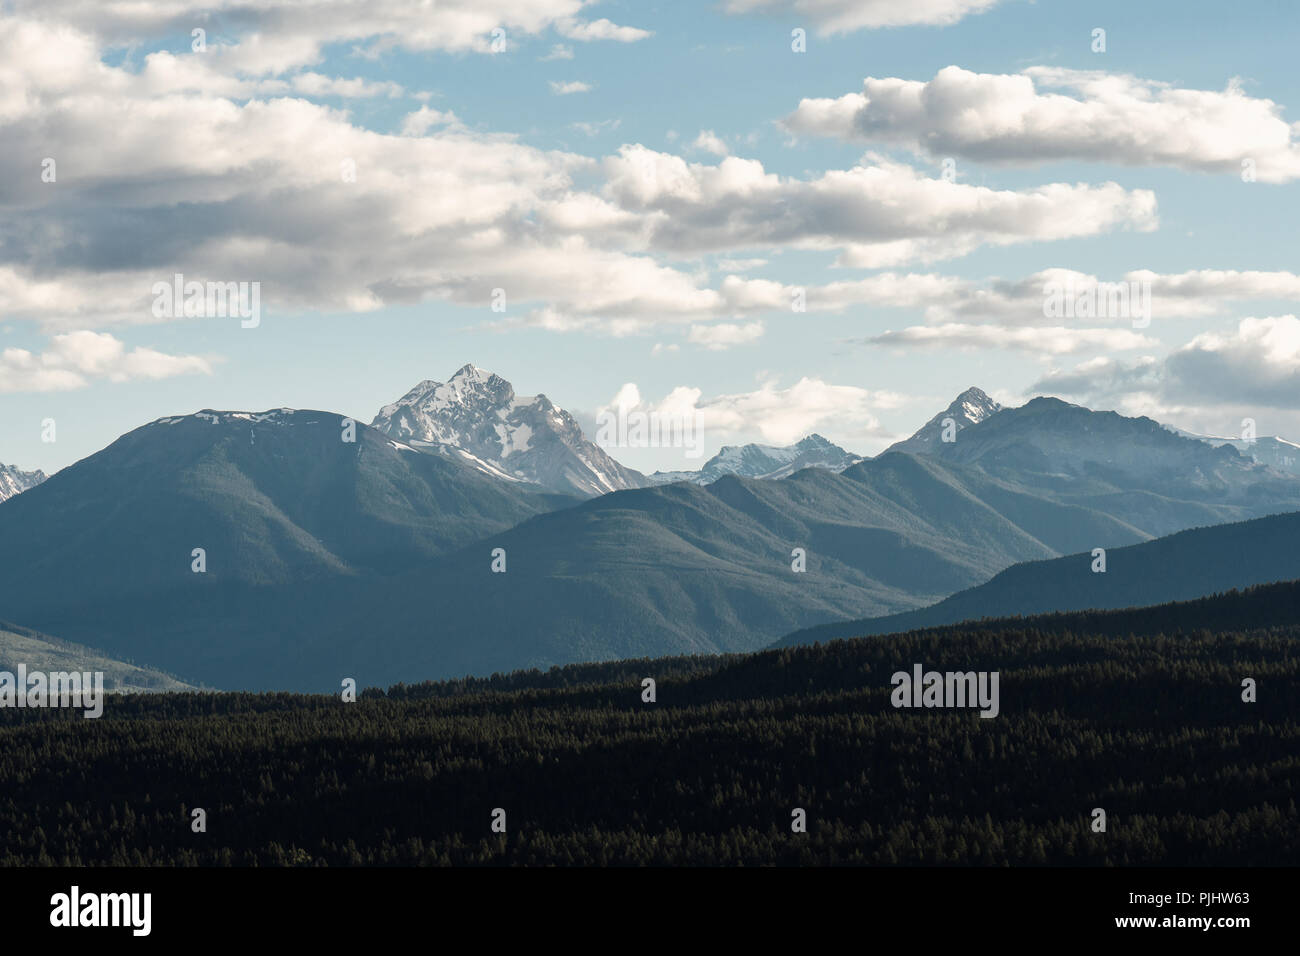 Canadian mountains at sunset - Stock Image